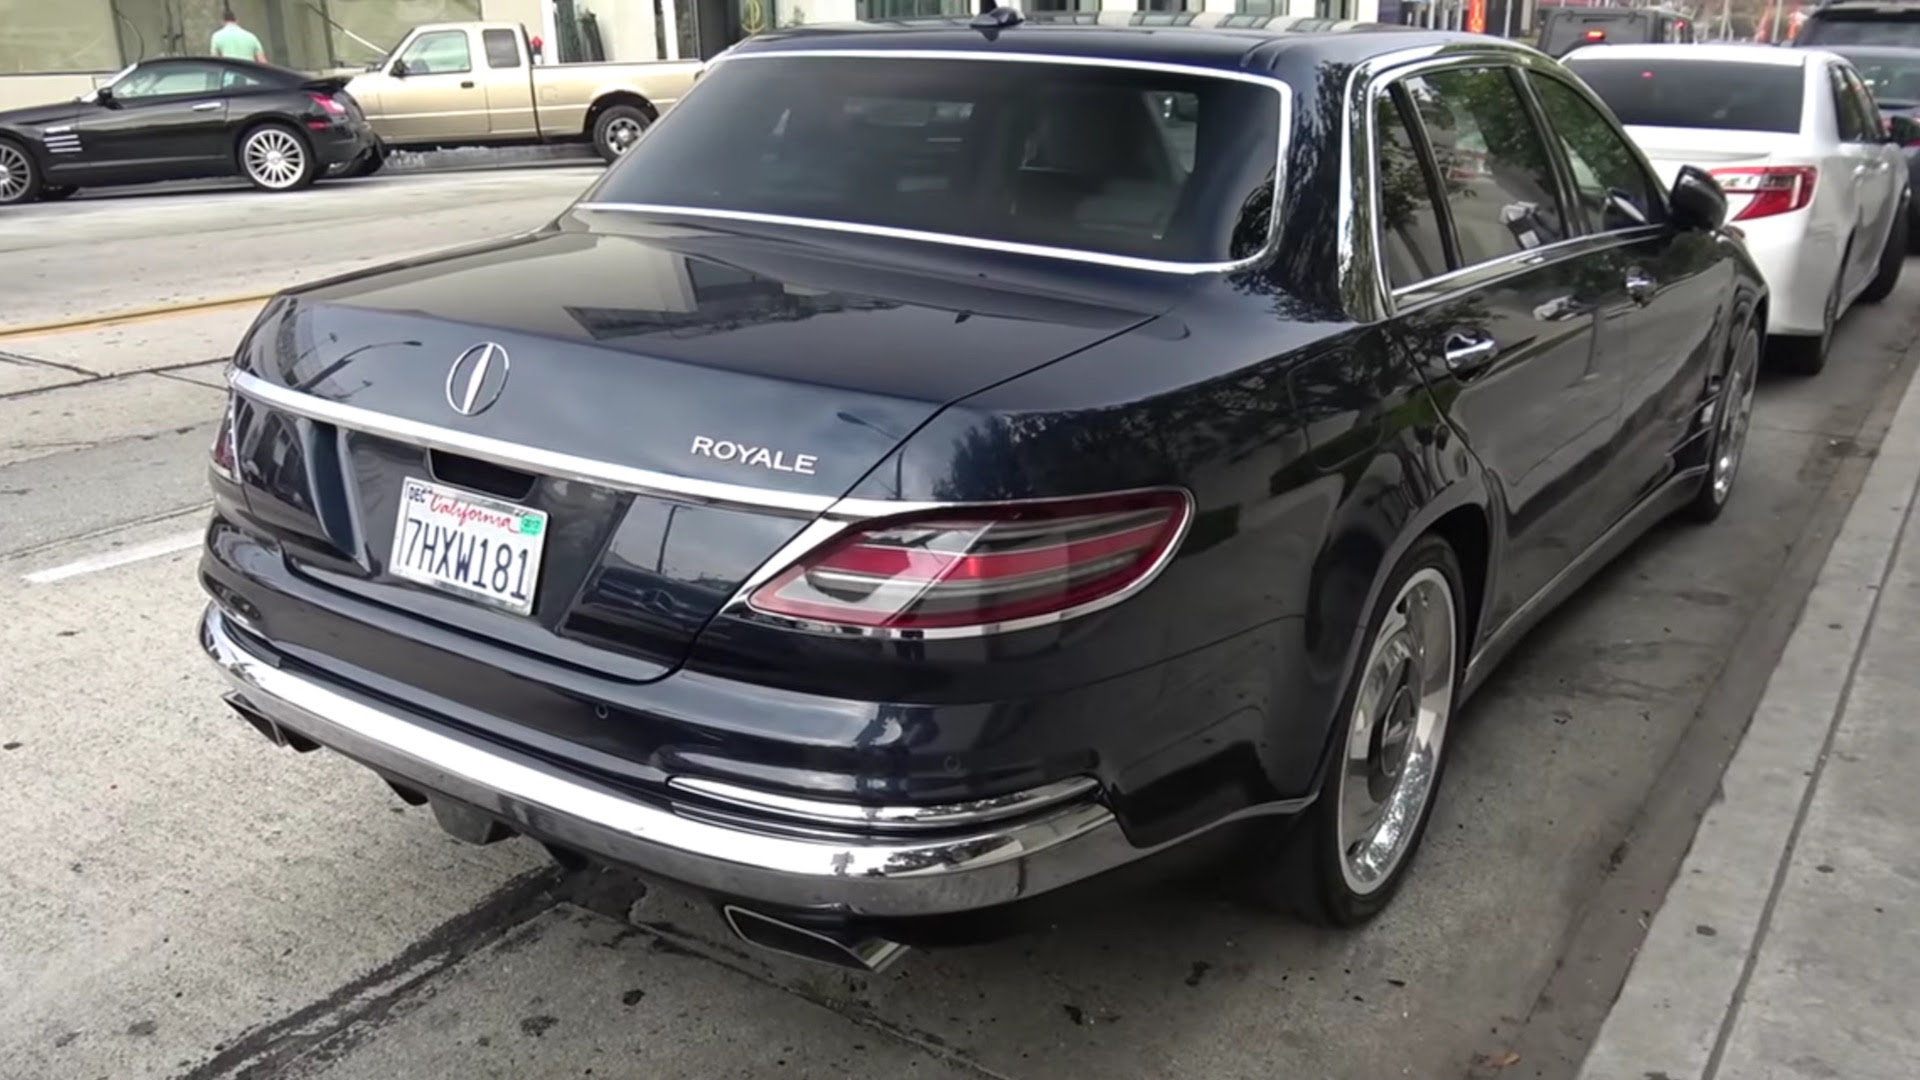 Check Out the Mythical Mercedes-Benz S600 Royale from ...